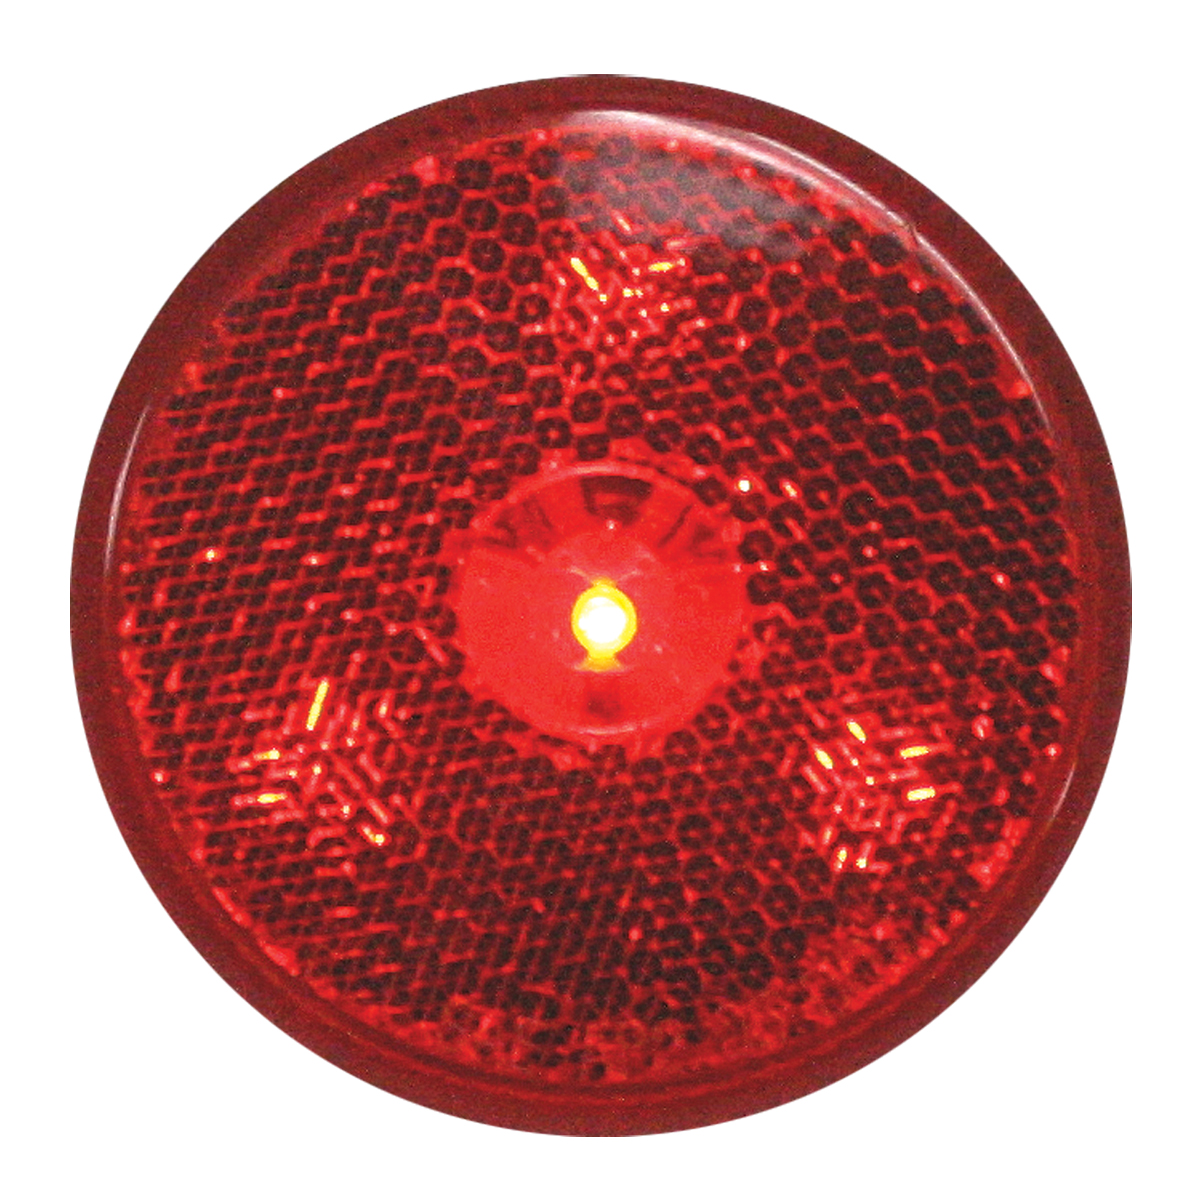 "76972 2.5"" Reflector Style LED Maker Light in Red/Red"